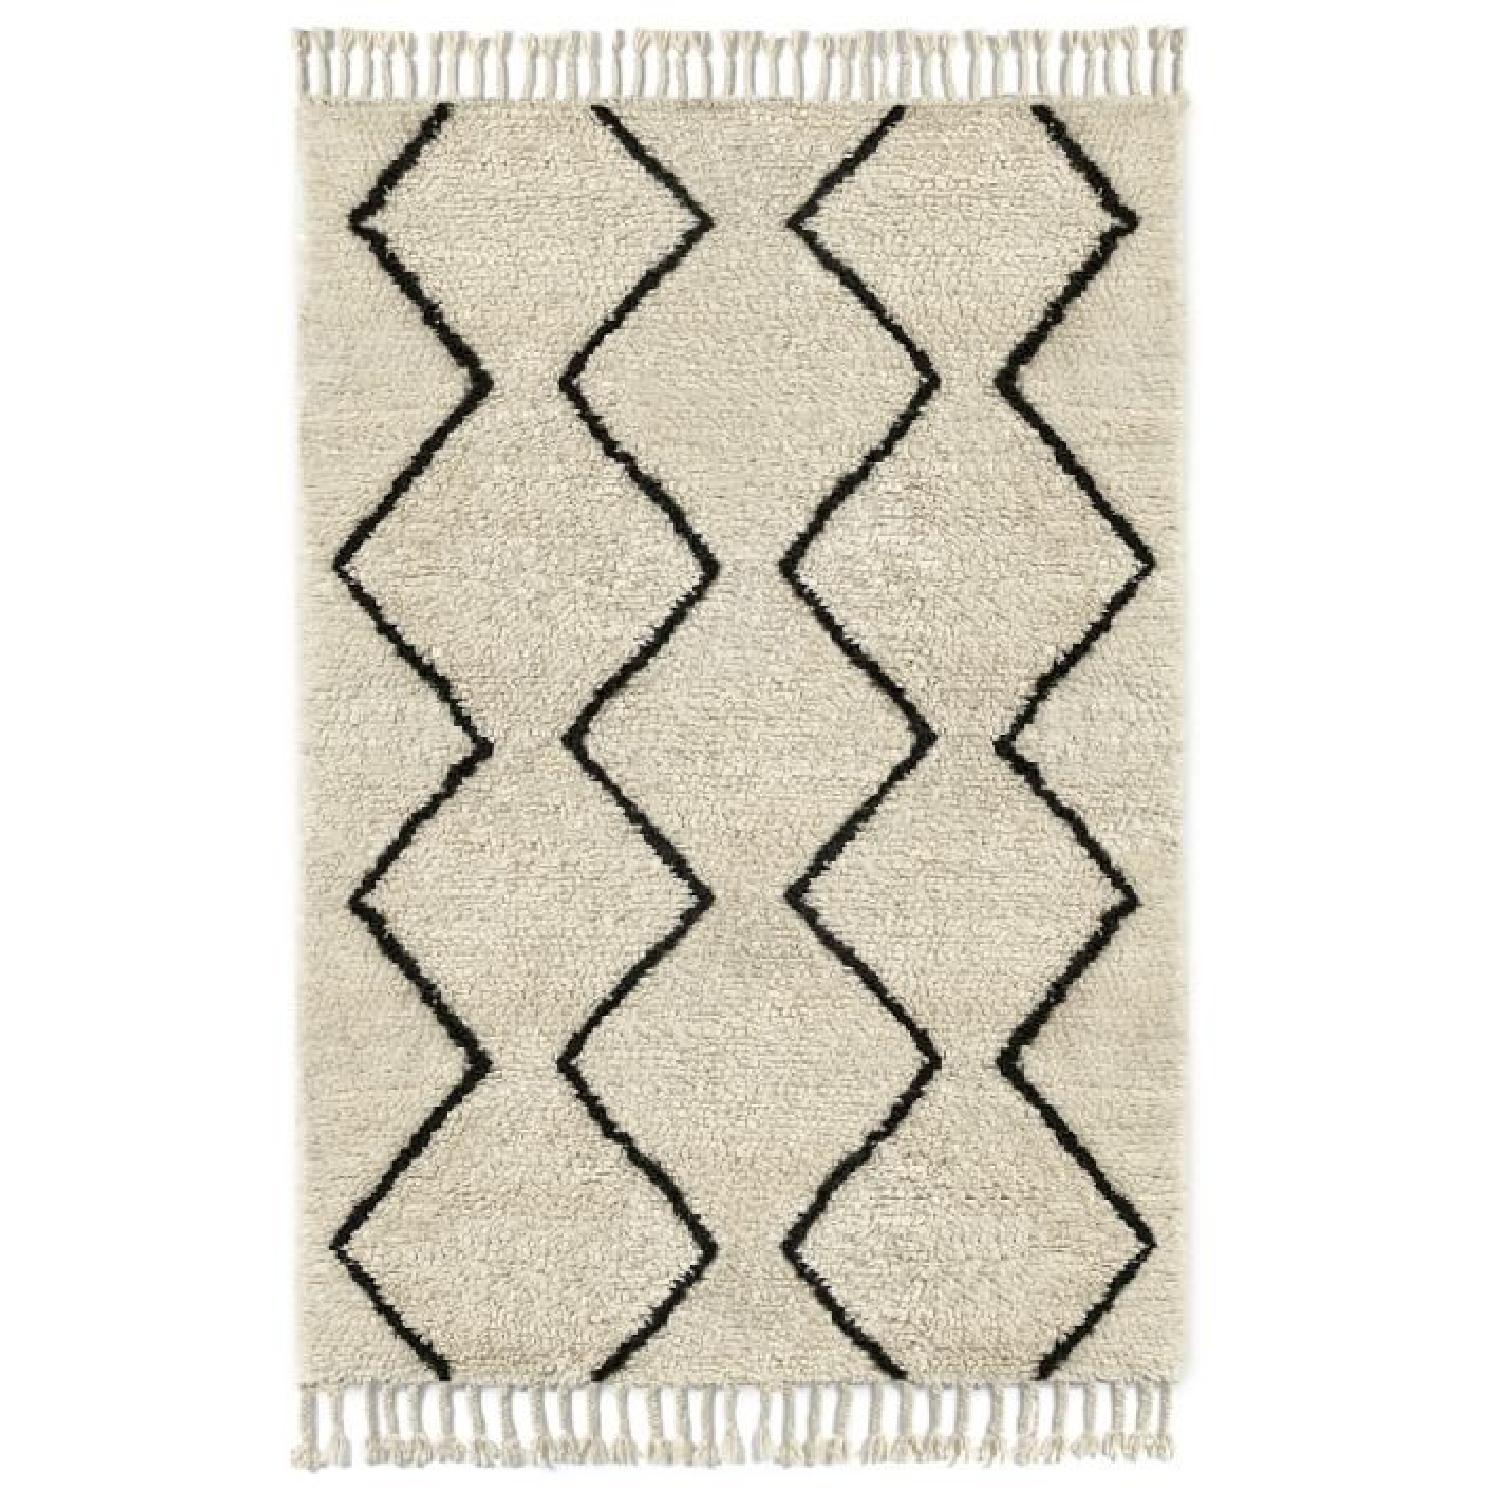 West Elm Souk Wool Rug in Natural Graphite